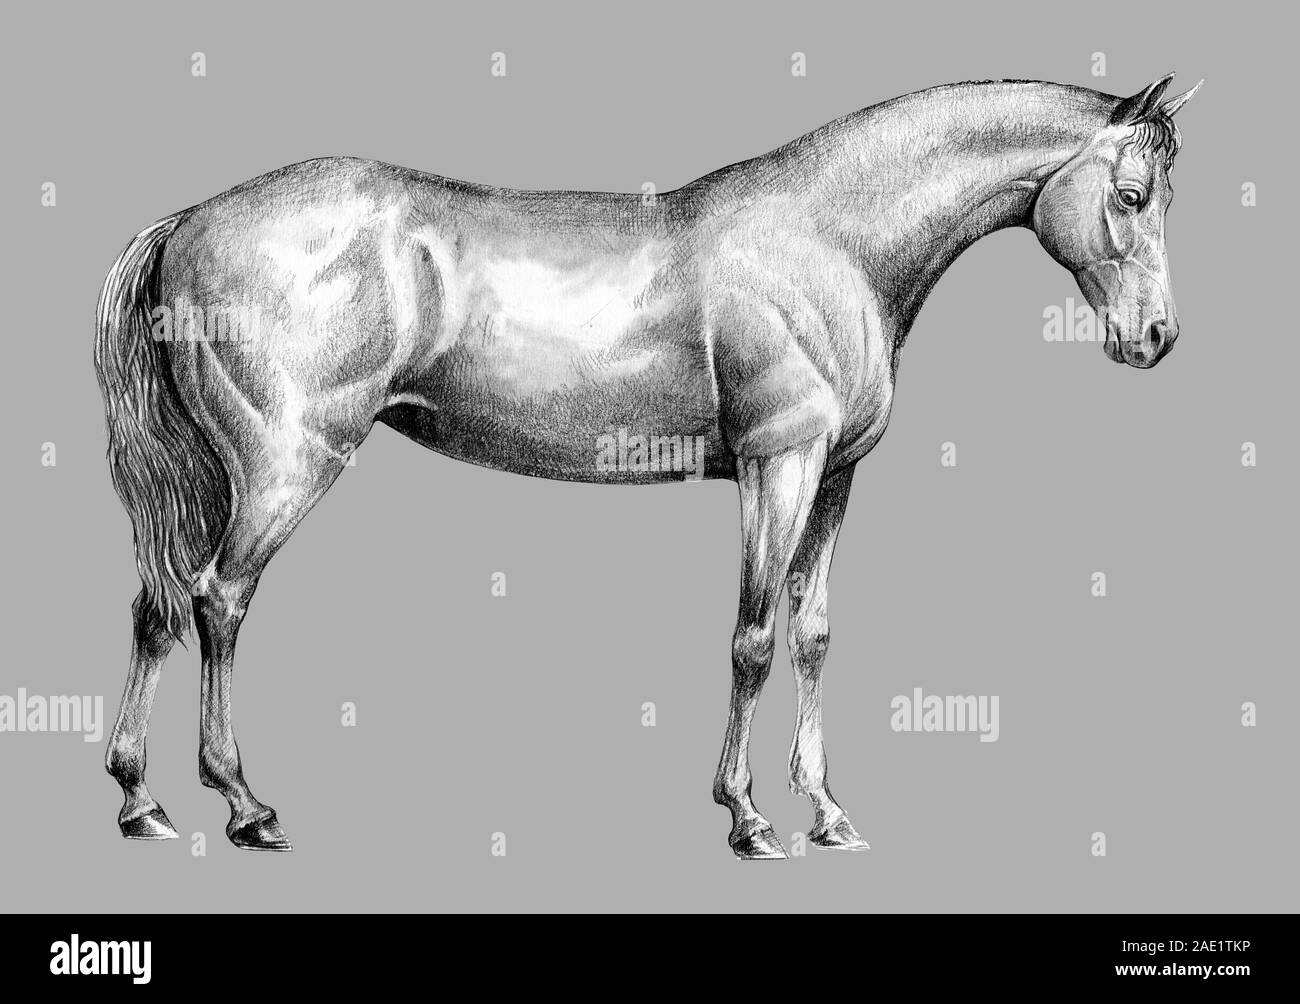 Beautiful Horse Pencil Portrait Of A Horse Equine Drawing Stock Photo Alamy